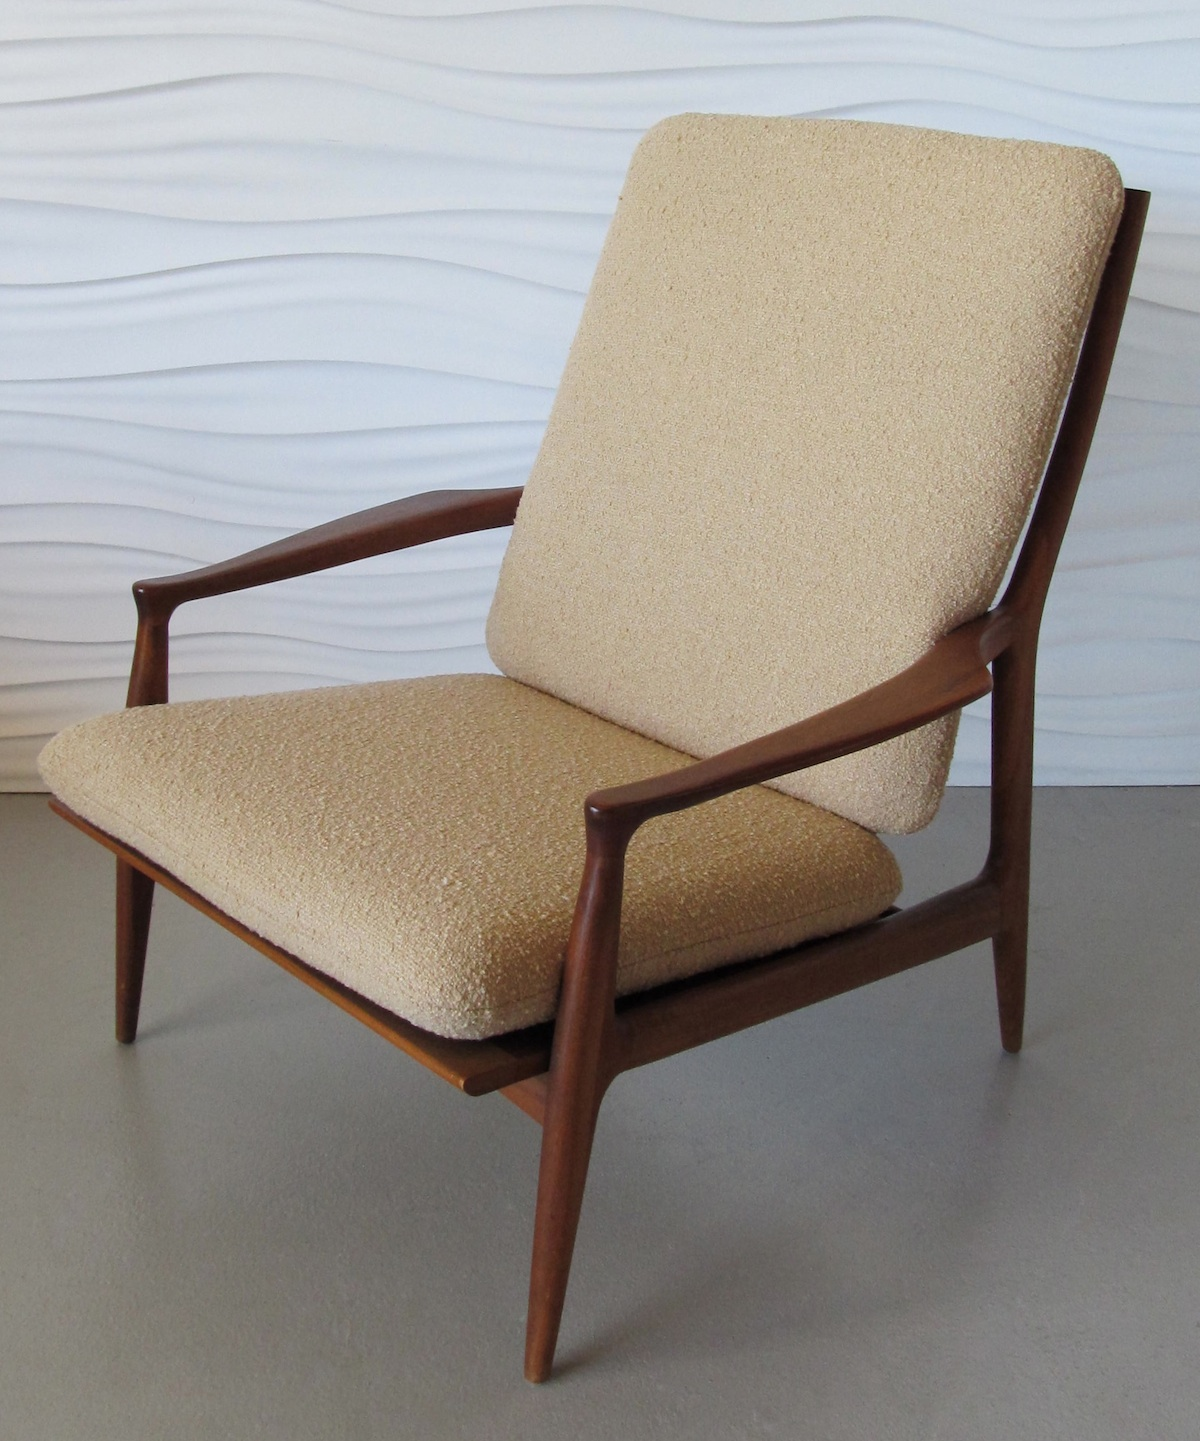 danish modern lounge chair modern chair restoration. Black Bedroom Furniture Sets. Home Design Ideas